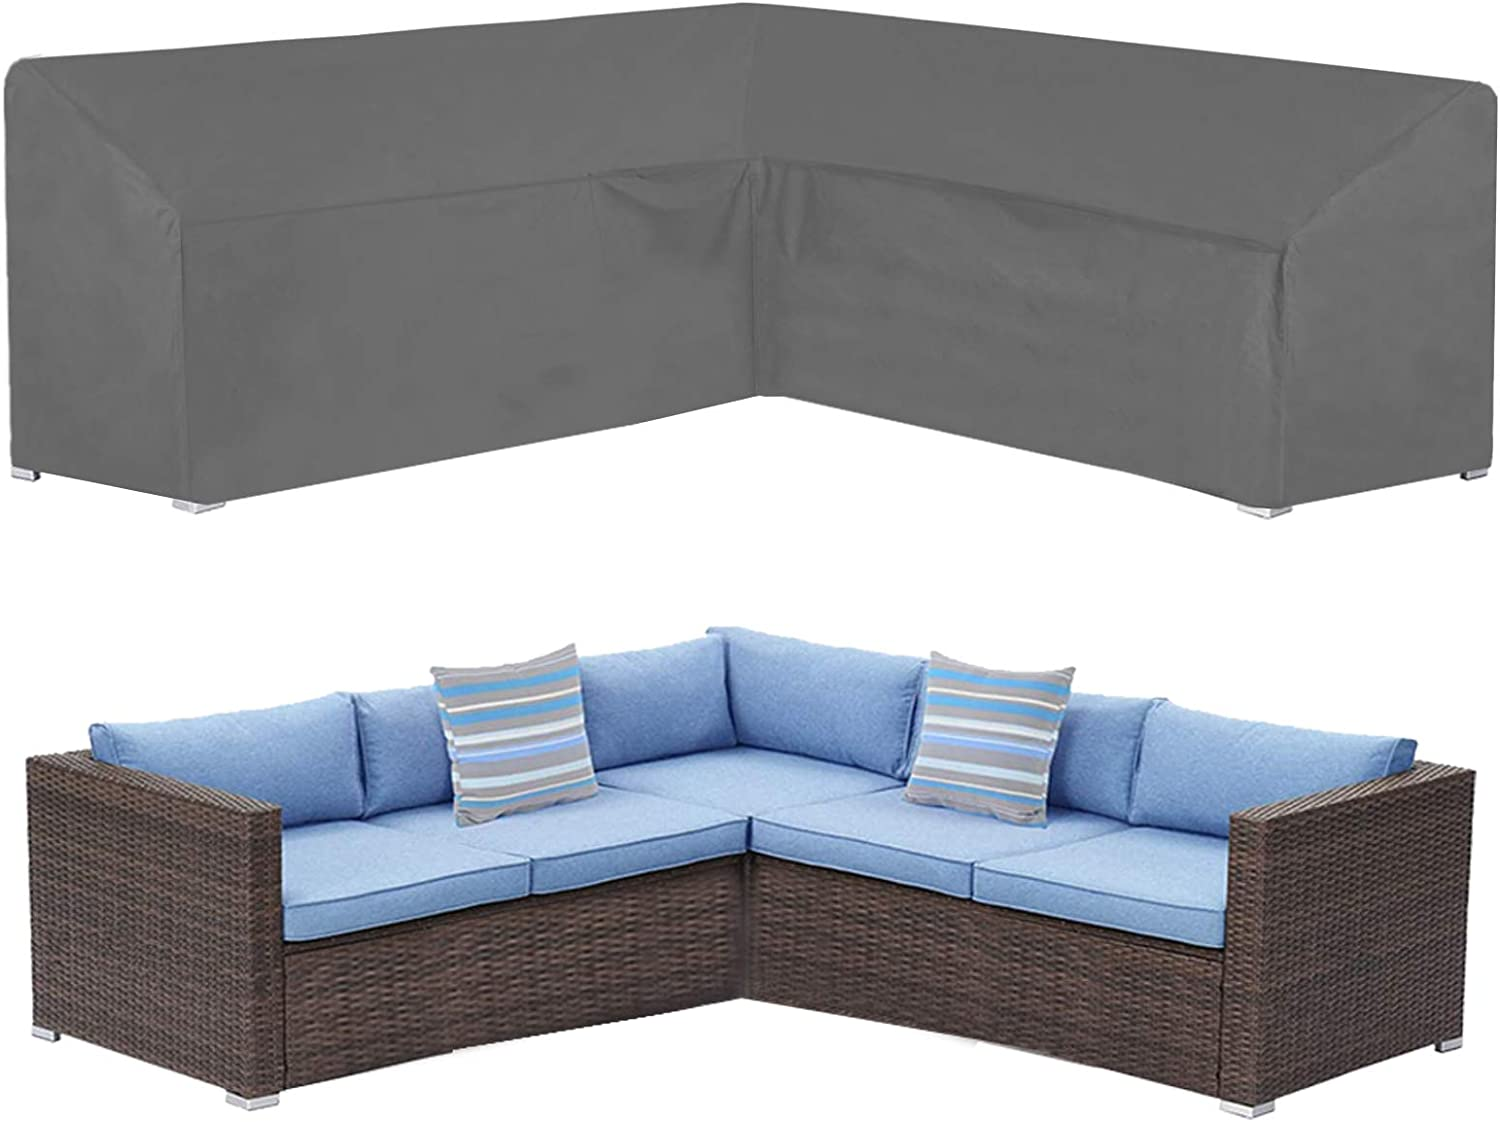 """STARTWO Patio Outdoor V Shaped Sectional Sofa Cover,Heavy Duty Waterproof Anti-UV Coating,Premium Patio Furniture Set Covers Designed with Durable Buckle Straps Air Vent, 100"""" L x 33.5"""" D x 31"""" H"""